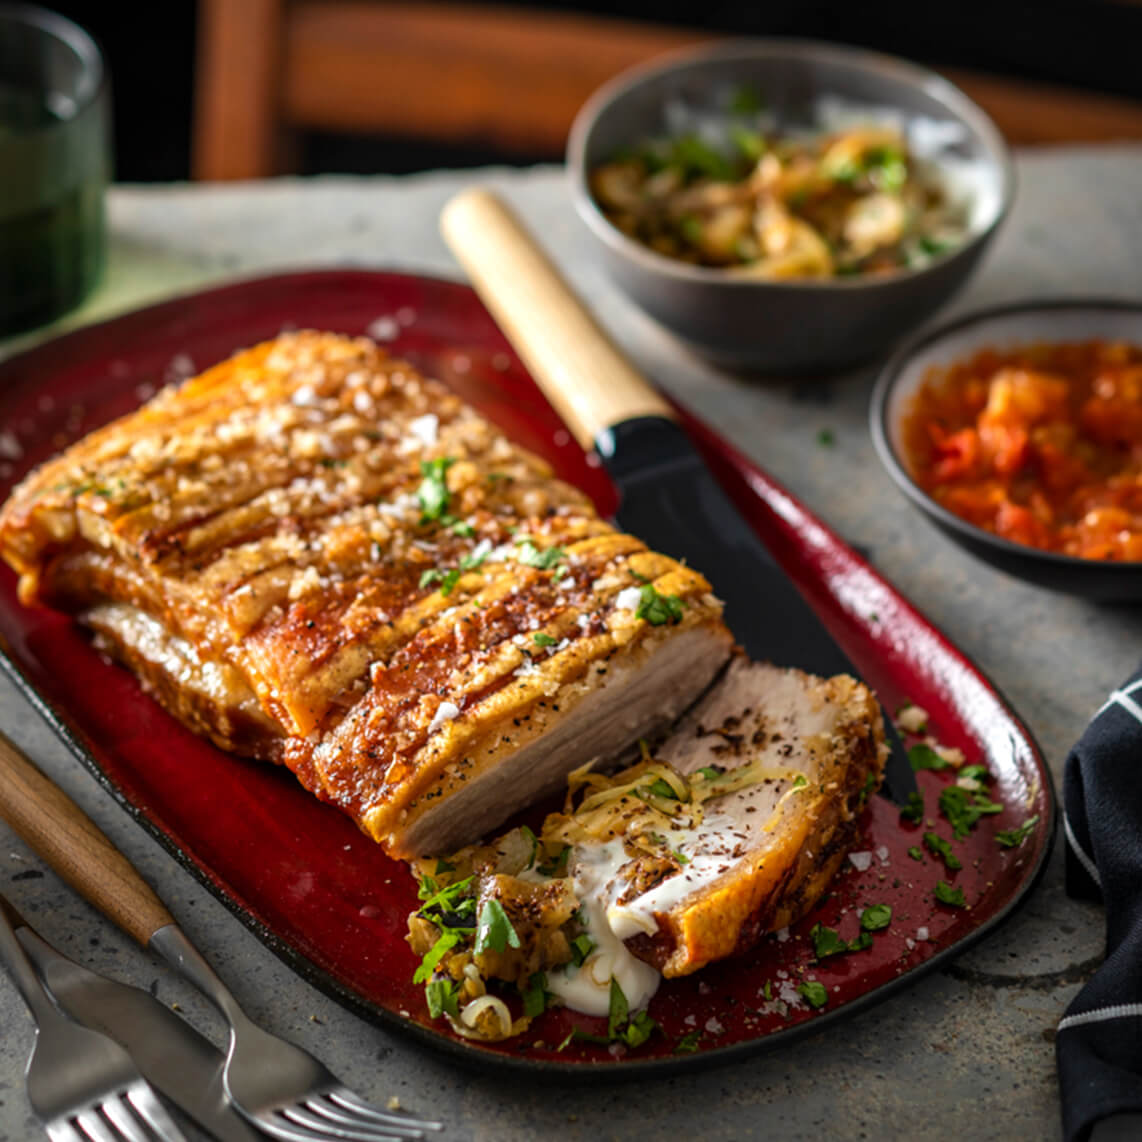 Slow-roasted pork belly with smoky brinjal salad